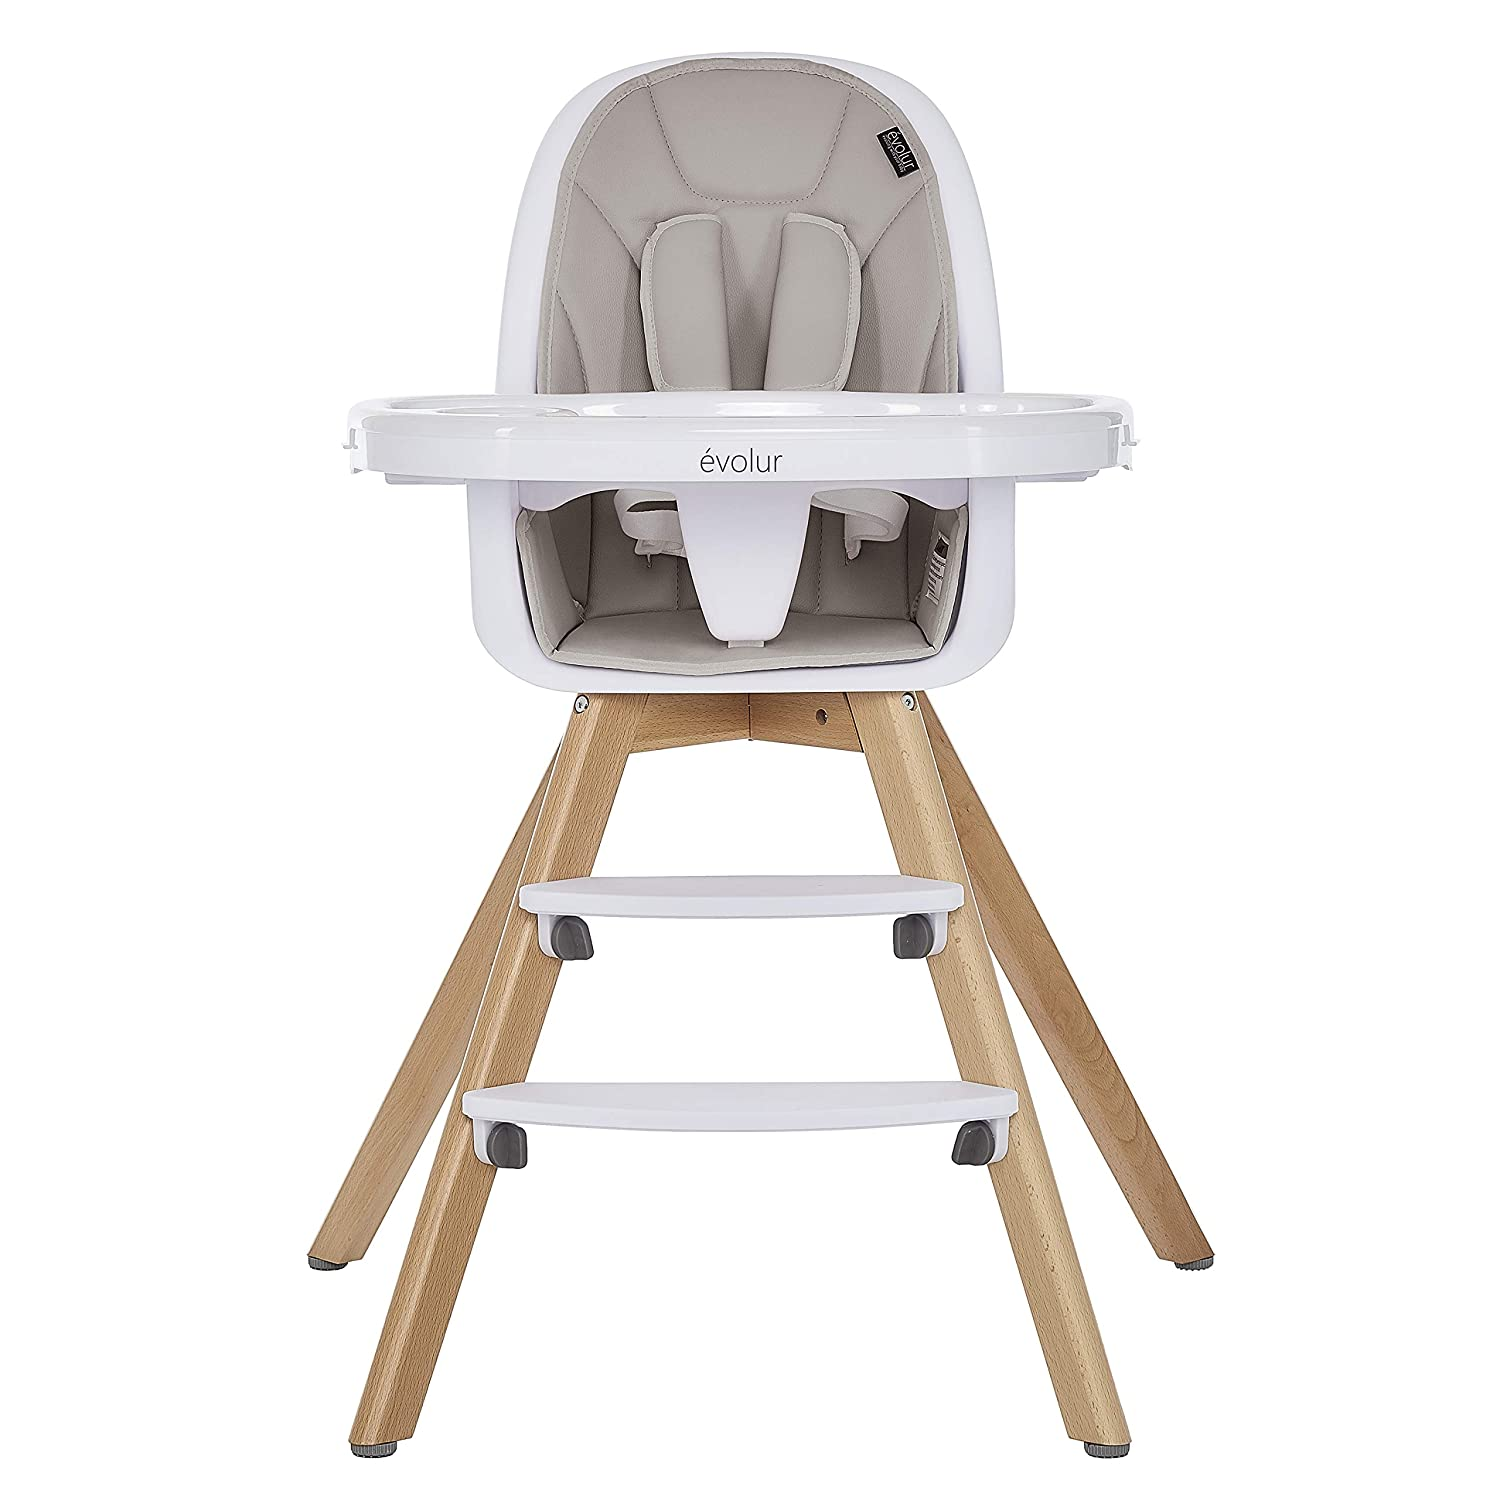 Evolur Zoodle 3-in-1 High Chair I Booster Feeding Chair I Modern Design I Toddler Chair I Removable Cushion I Adjustable Tray I Baby, Infant, and Toddler in Light Grey